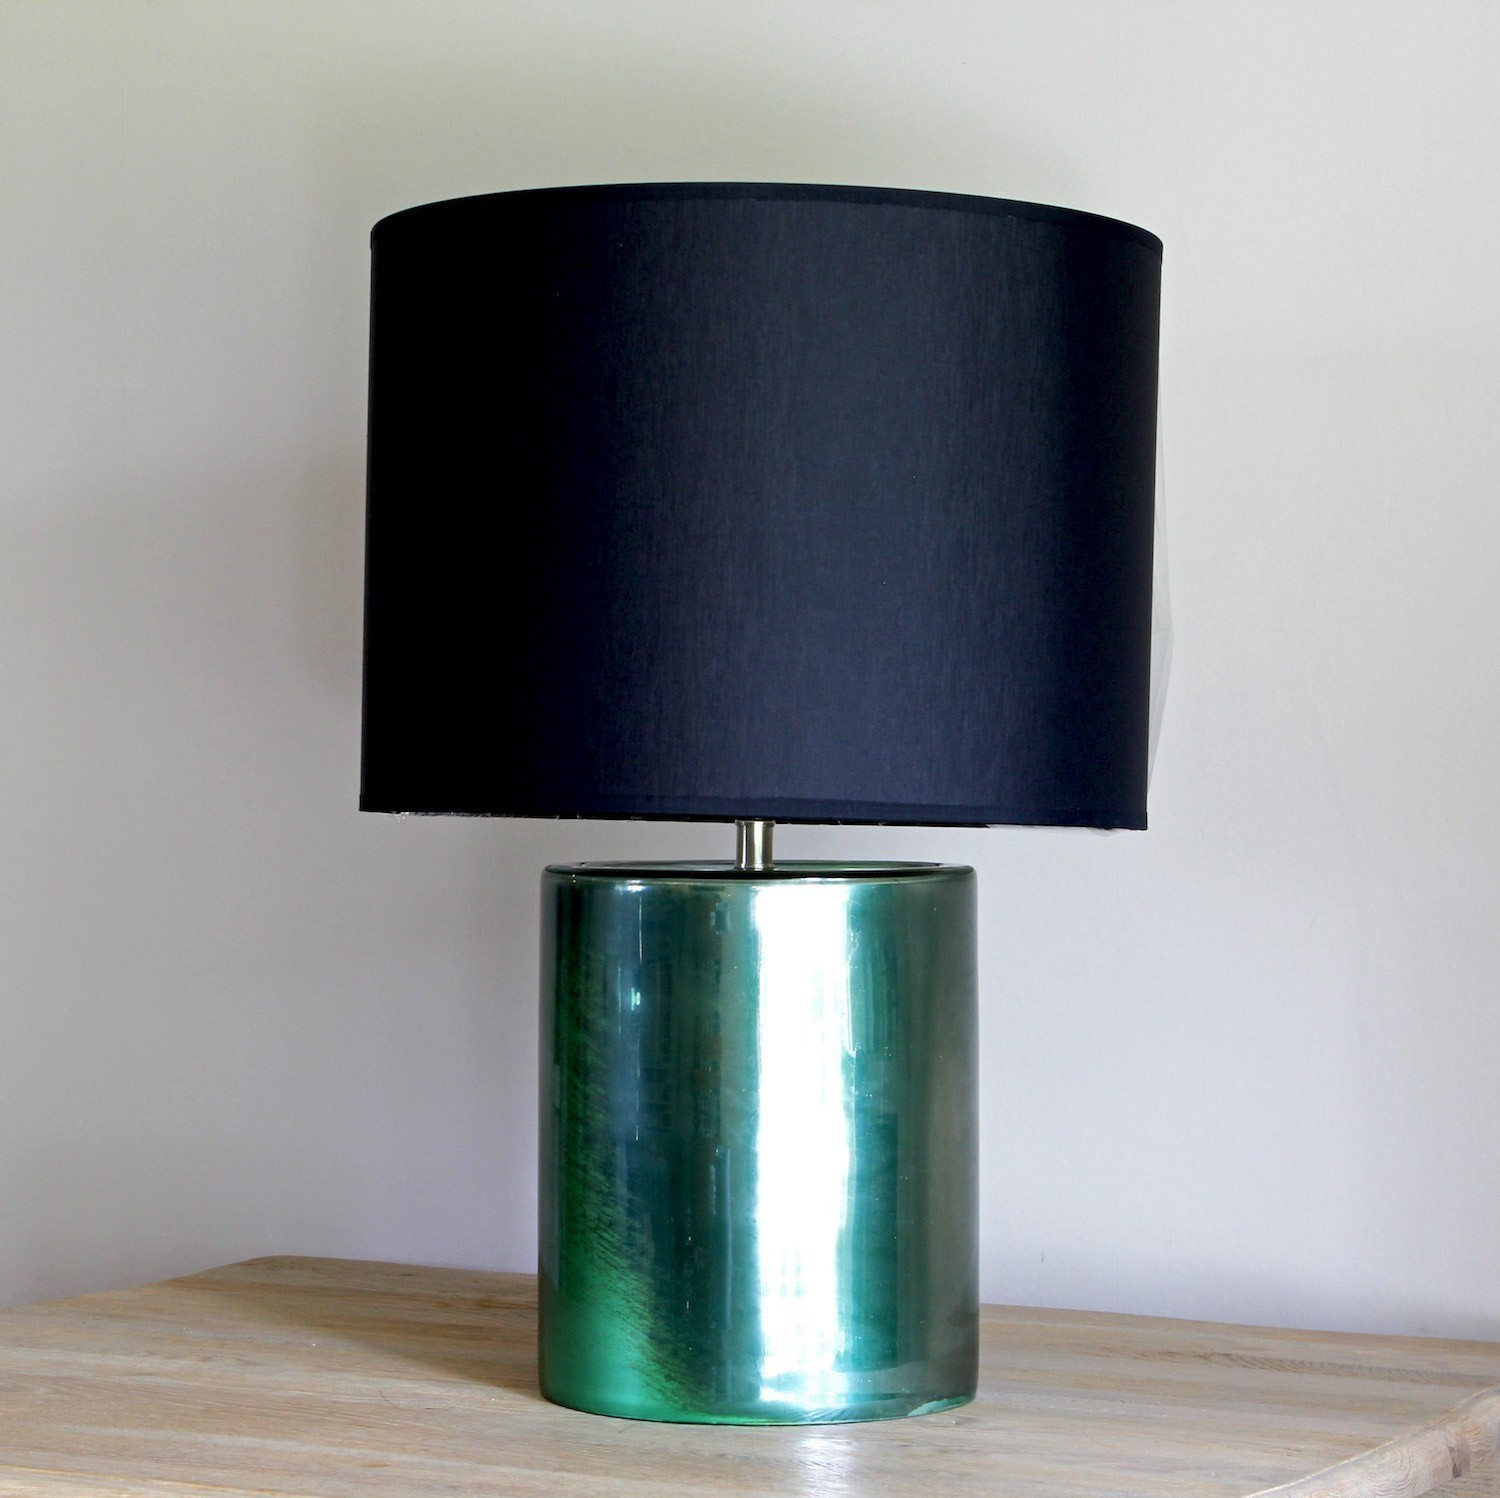 Green cylindrical lamp base